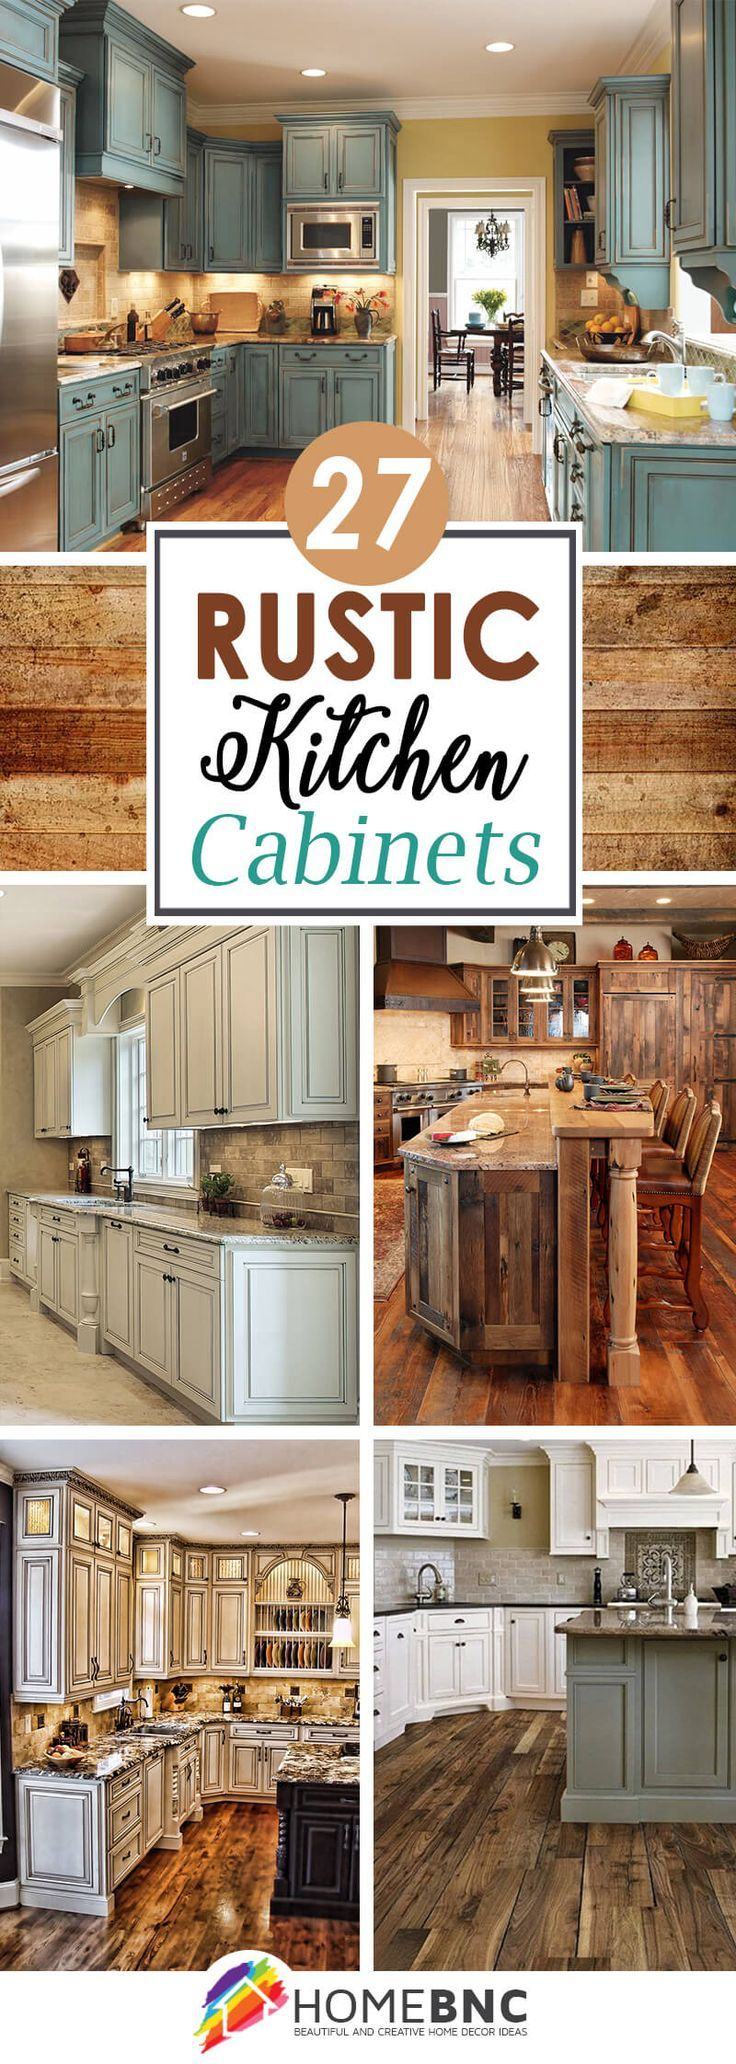 88 Best Diy House Tips Images On Pinterest Glass Jars Gutter Home Dzine What To Do When A Circuit Breaker Trips 27 Cabinets For The Rustic Kitchen Of Your Dreams